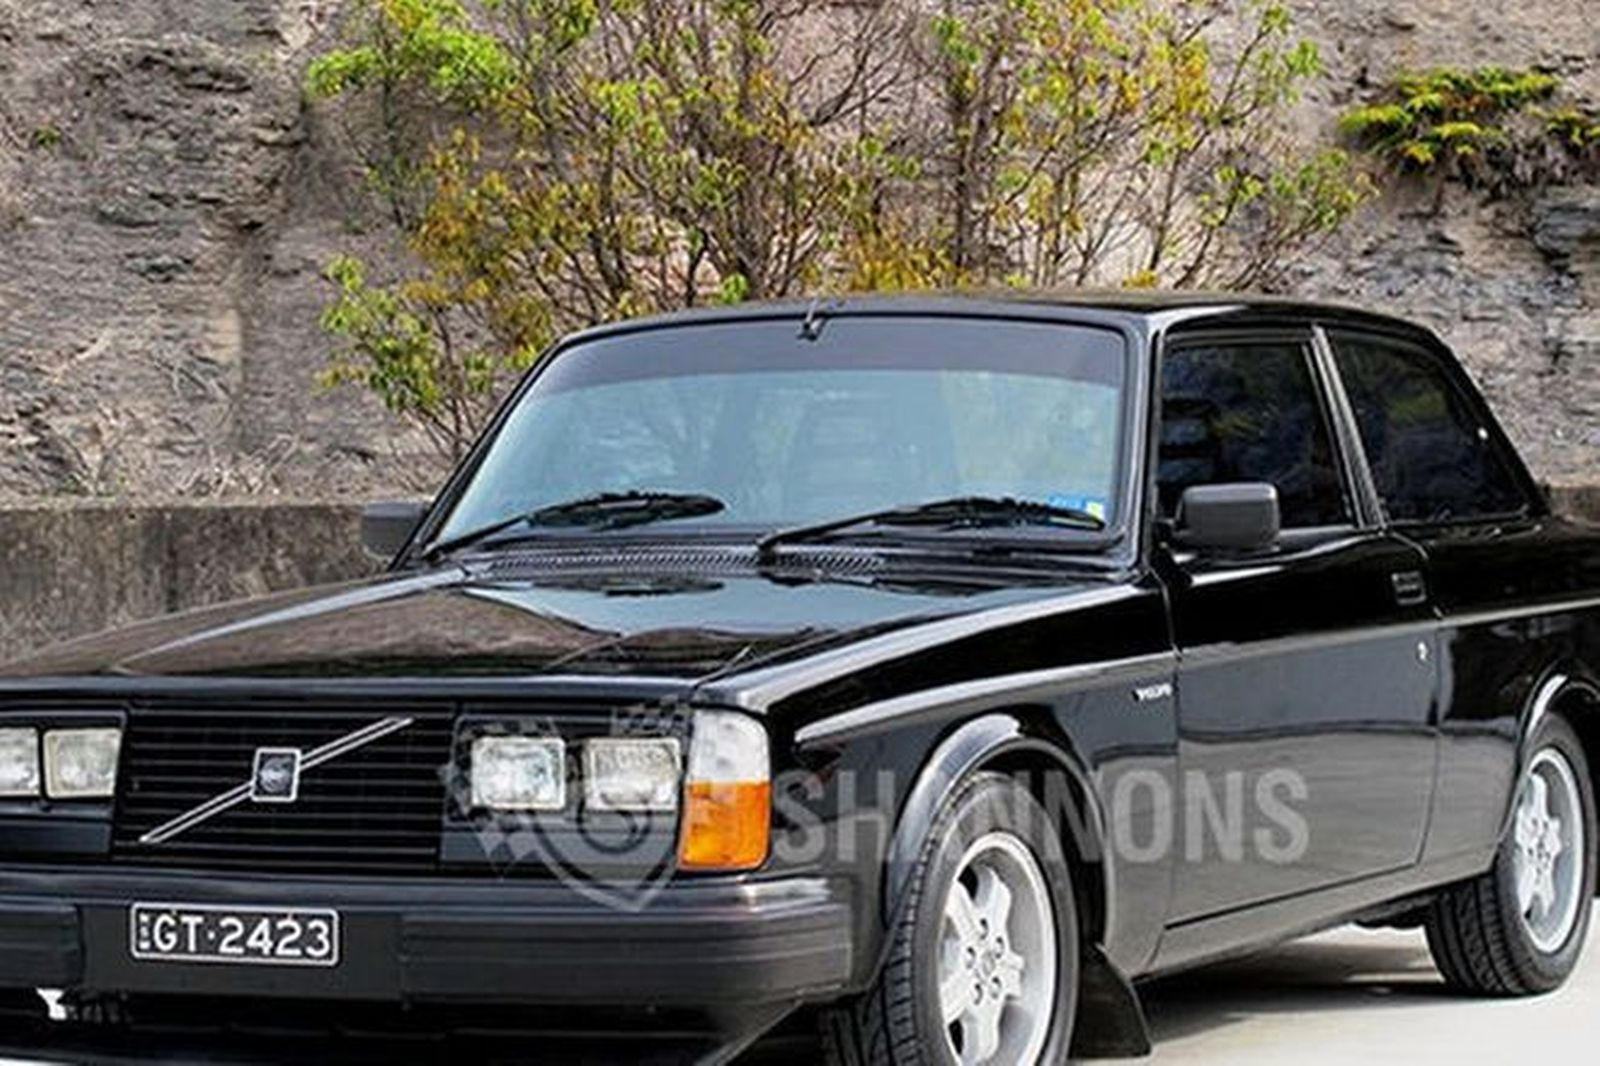 Sold: Volvo 242 GT Coupe Auctions - Lot 1 - Shannons